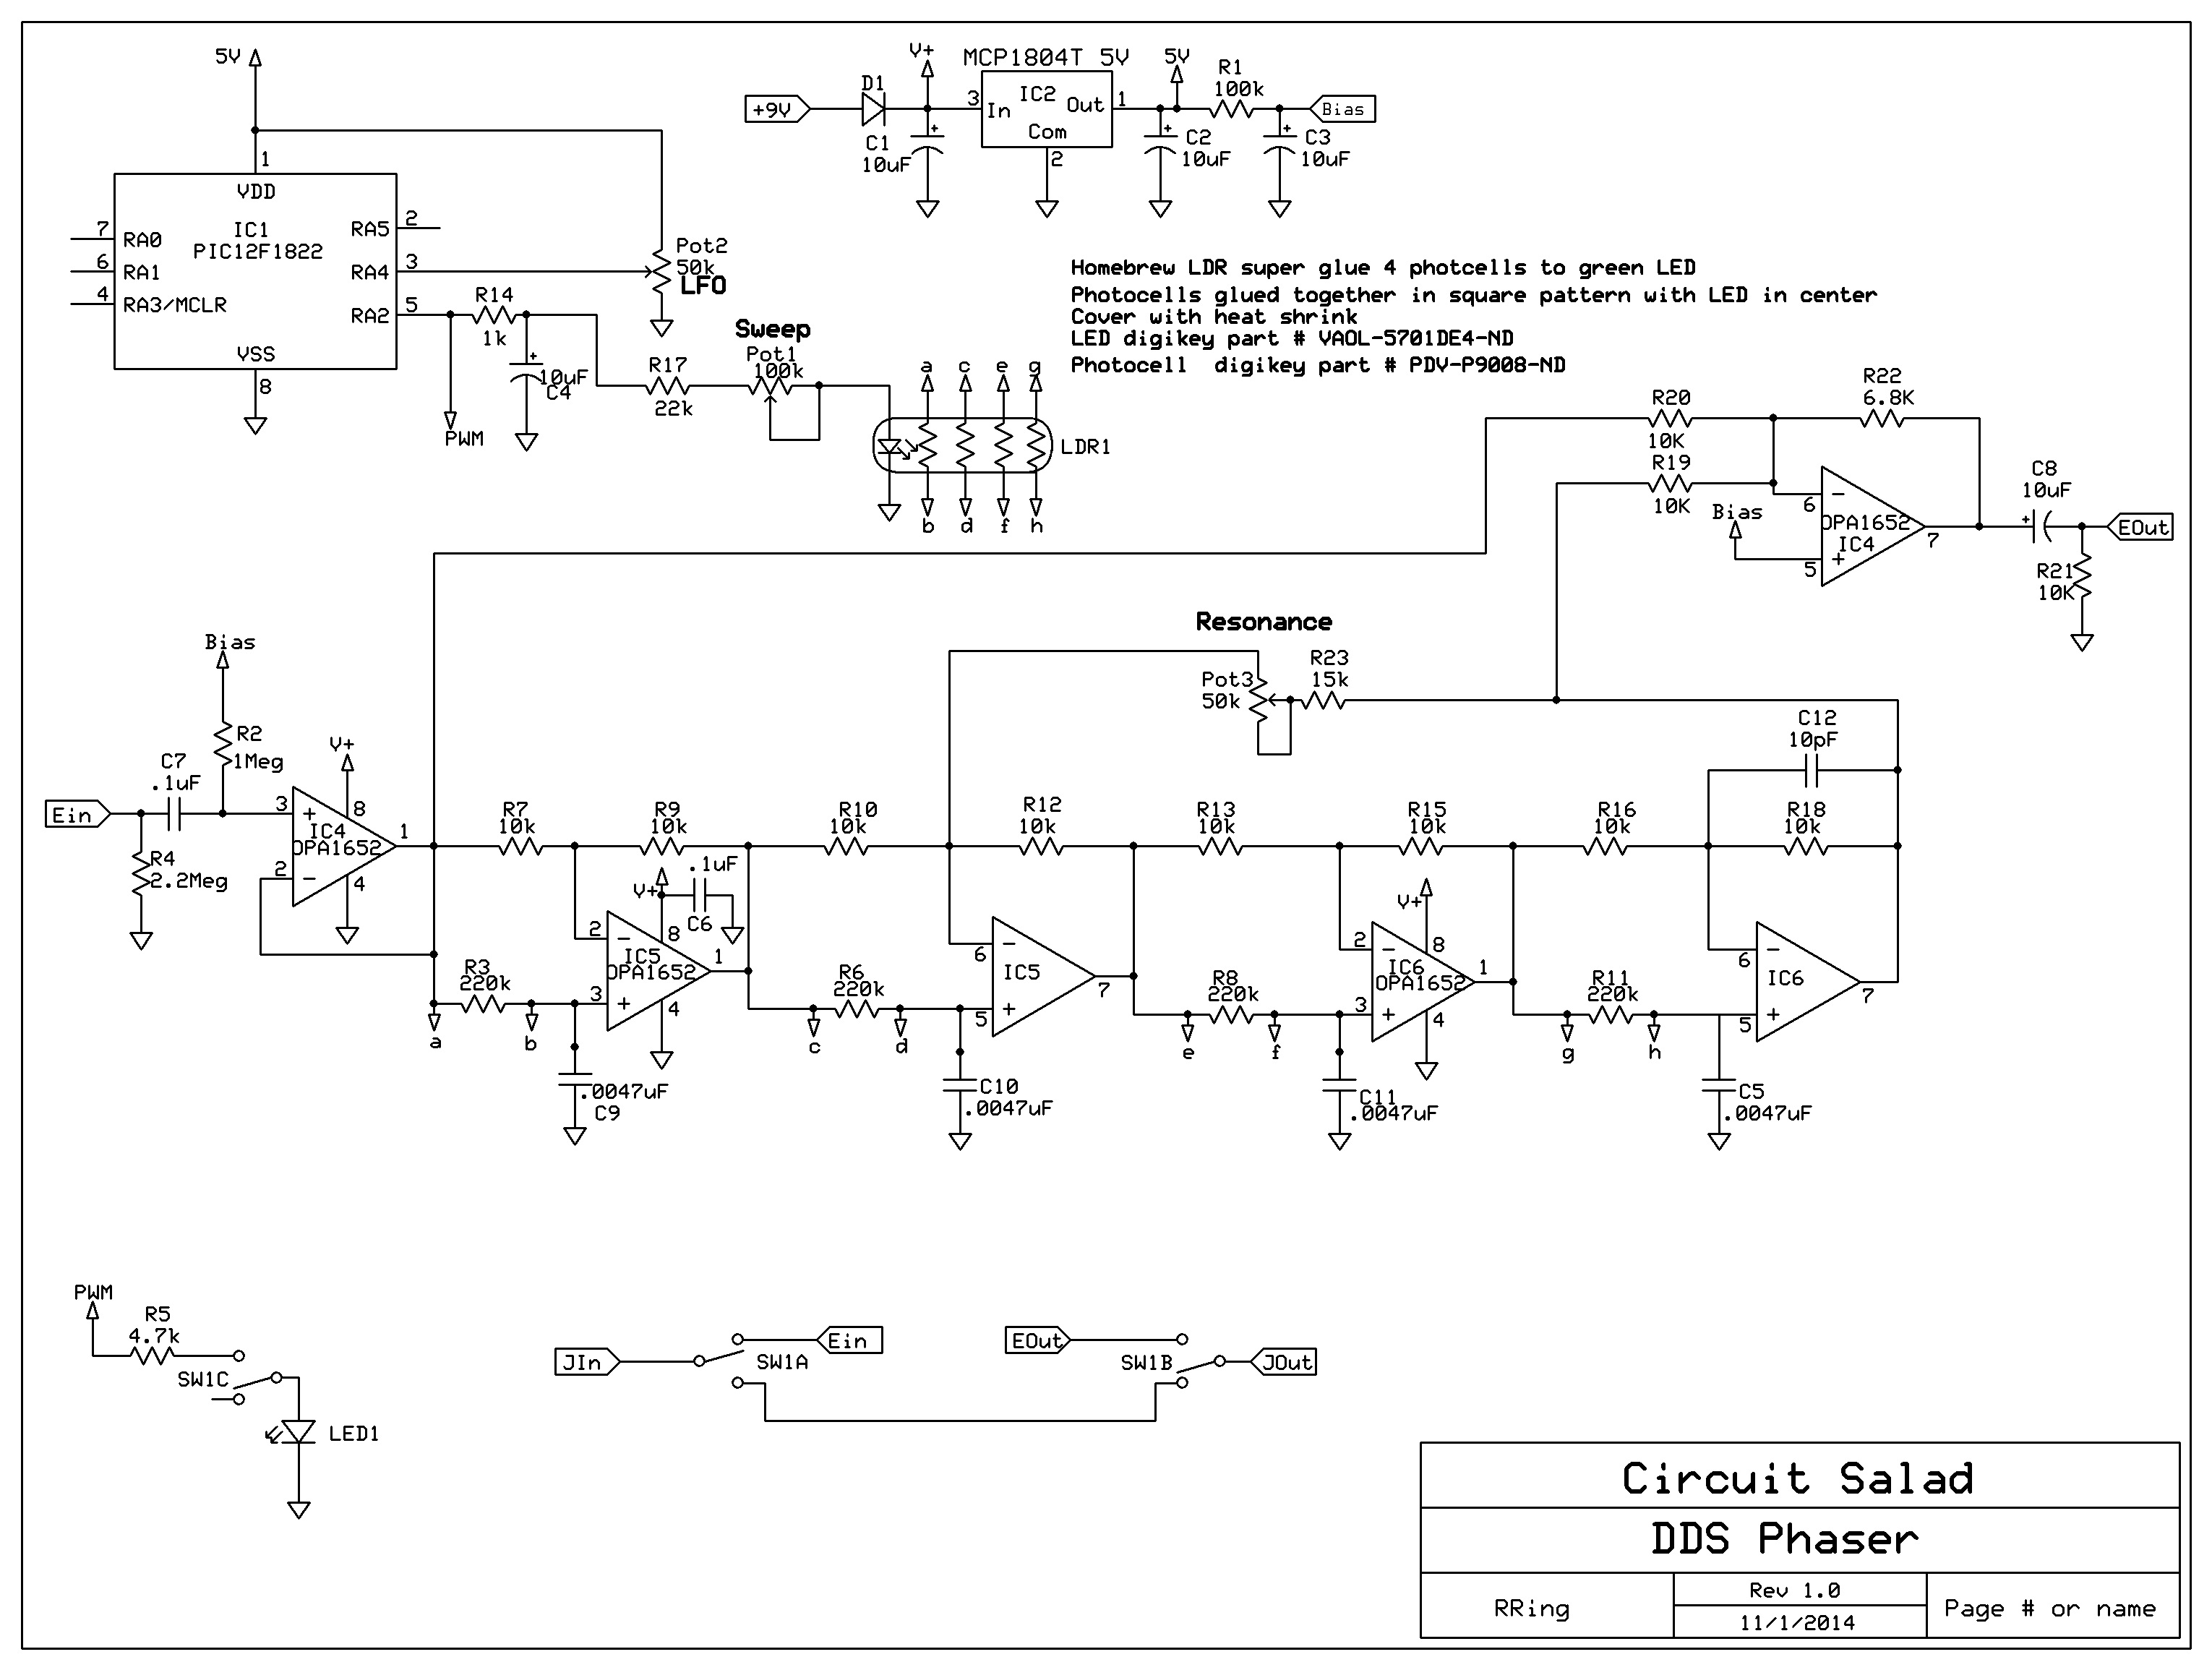 2014 Circuit Salad The Four Circuits I Put On Board Of Course Used 001uf Not Etched